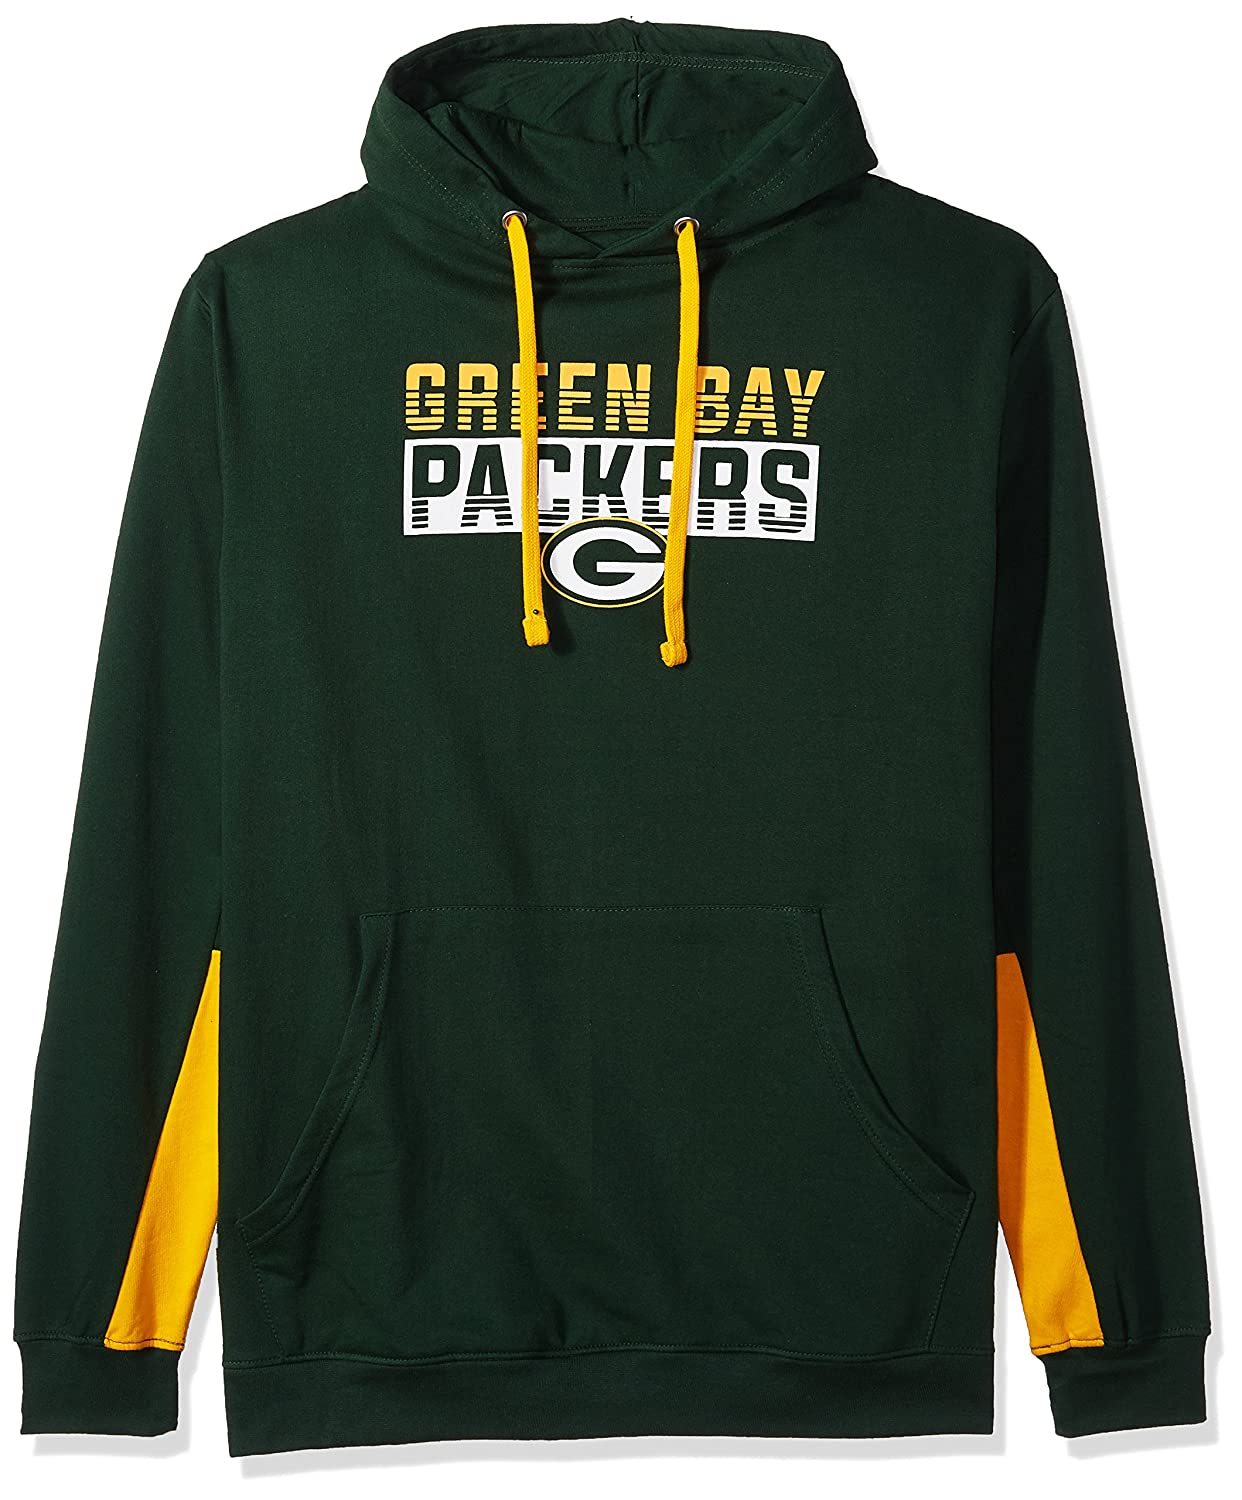 NFLメンズパッカーズプルオーバーパーカー B0752V7H7T 5X|Dark Green/Gold|Green Bay Packers Dark Green/Gold 5X